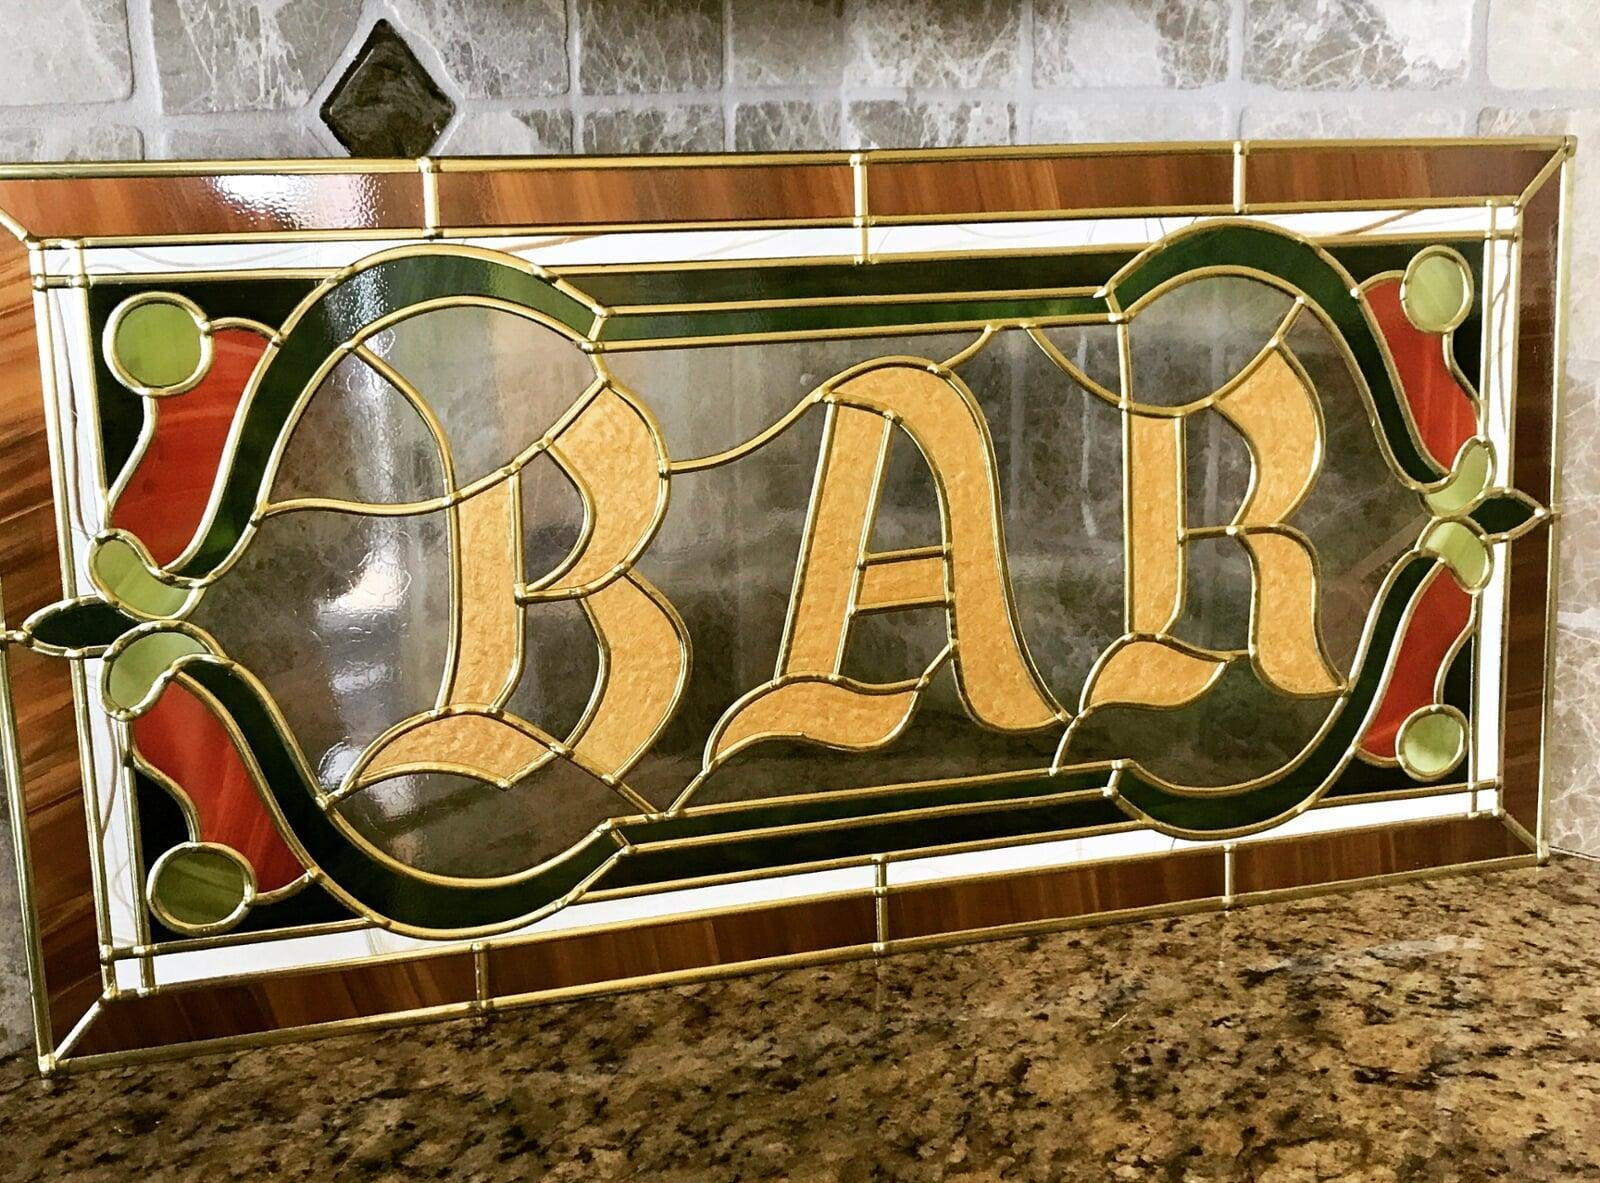 Barber Shop Design Stained Glass tile